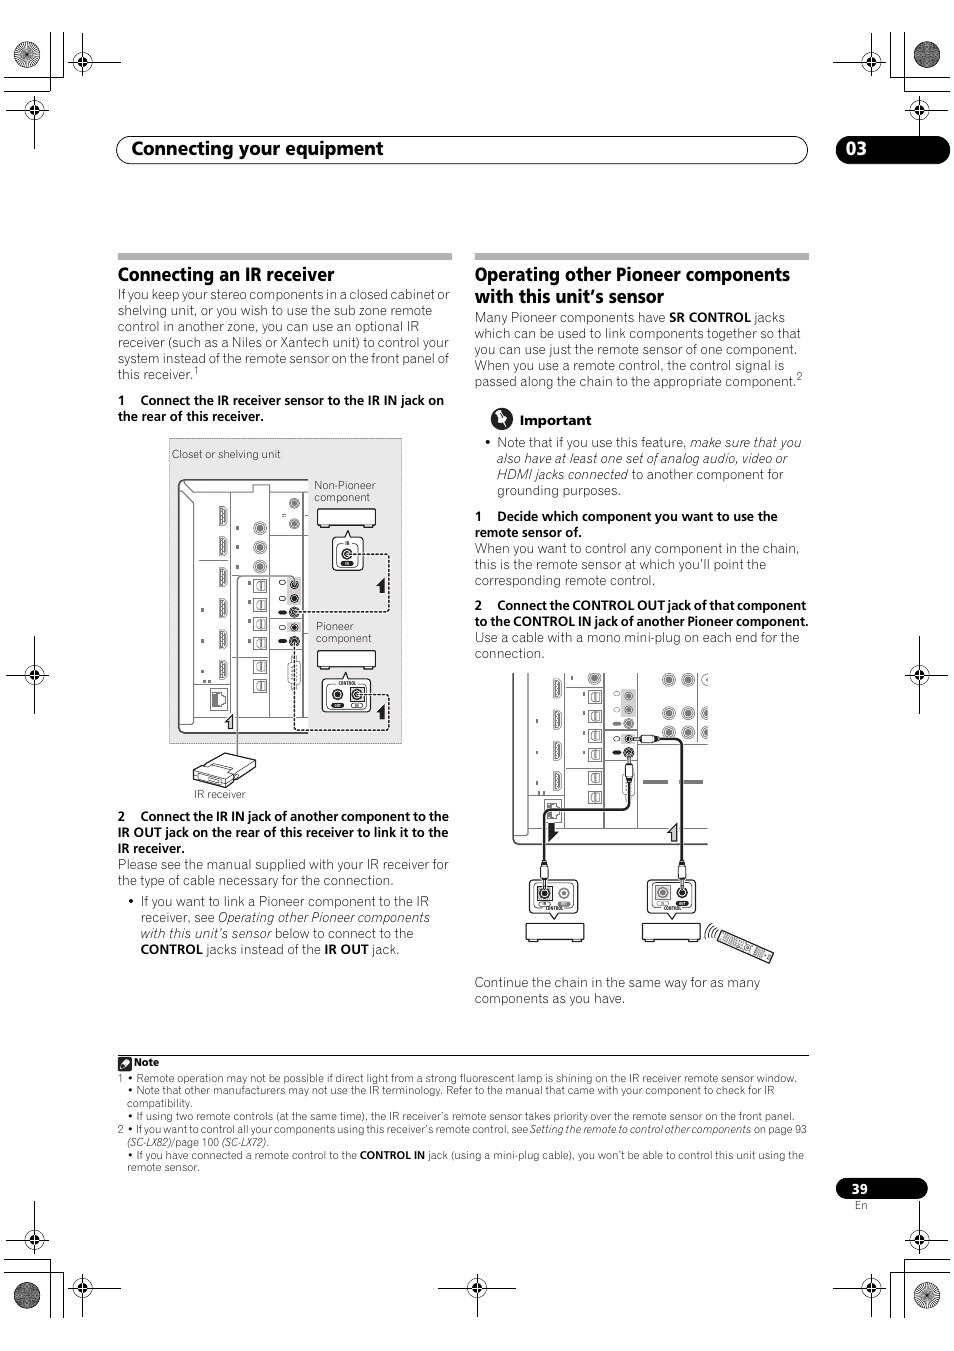 Xantech Ir Receiver Wiring Diagram | Wiring Diagram on series and parallel circuits diagrams, hvac diagrams, battery diagrams, sincgars radio configurations diagrams, engine diagrams, honda motorcycle repair diagrams, friendship bracelet diagrams, switch diagrams, transformer diagrams, troubleshooting diagrams, led circuit diagrams, smart car diagrams, lighting diagrams, internet of things diagrams, electrical diagrams, electronic circuit diagrams, snatch block diagrams, motor diagrams, pinout diagrams, gmc fuse box diagrams,